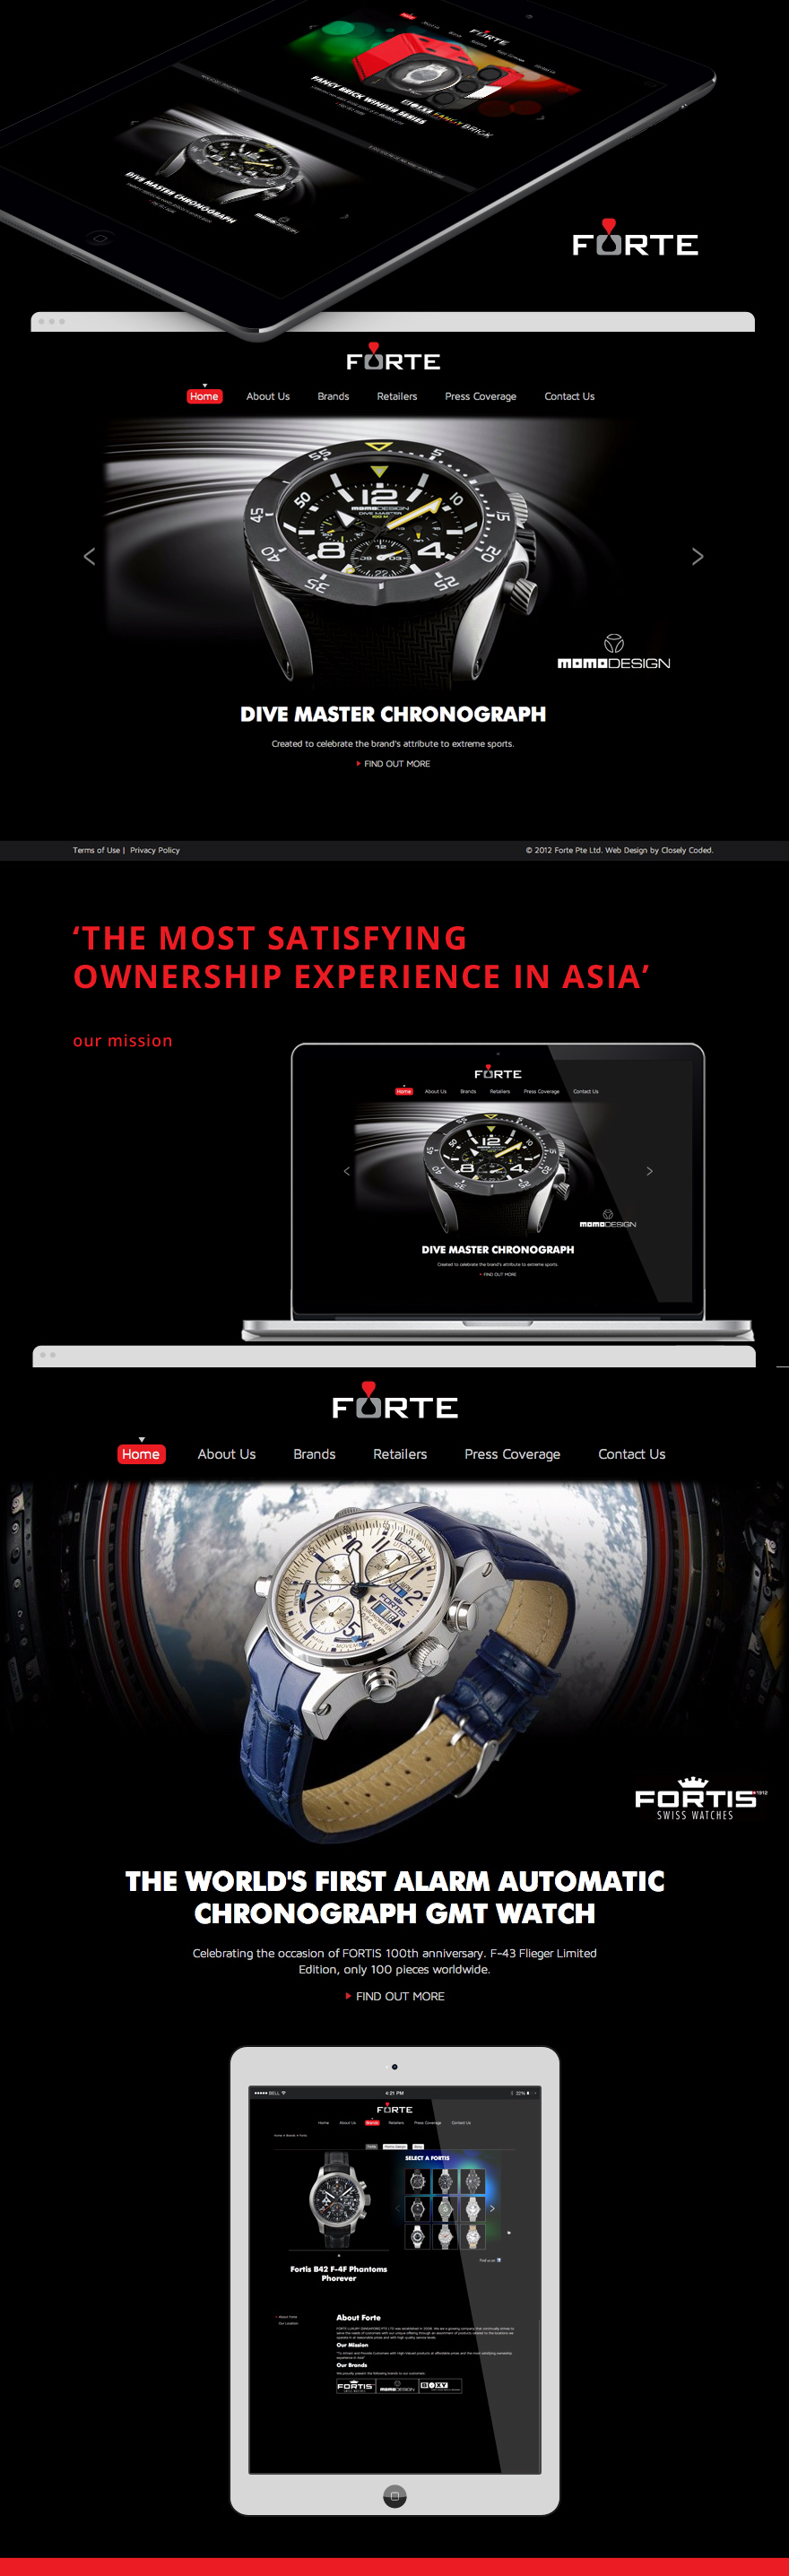 Projects - Forte Luxury Singapore